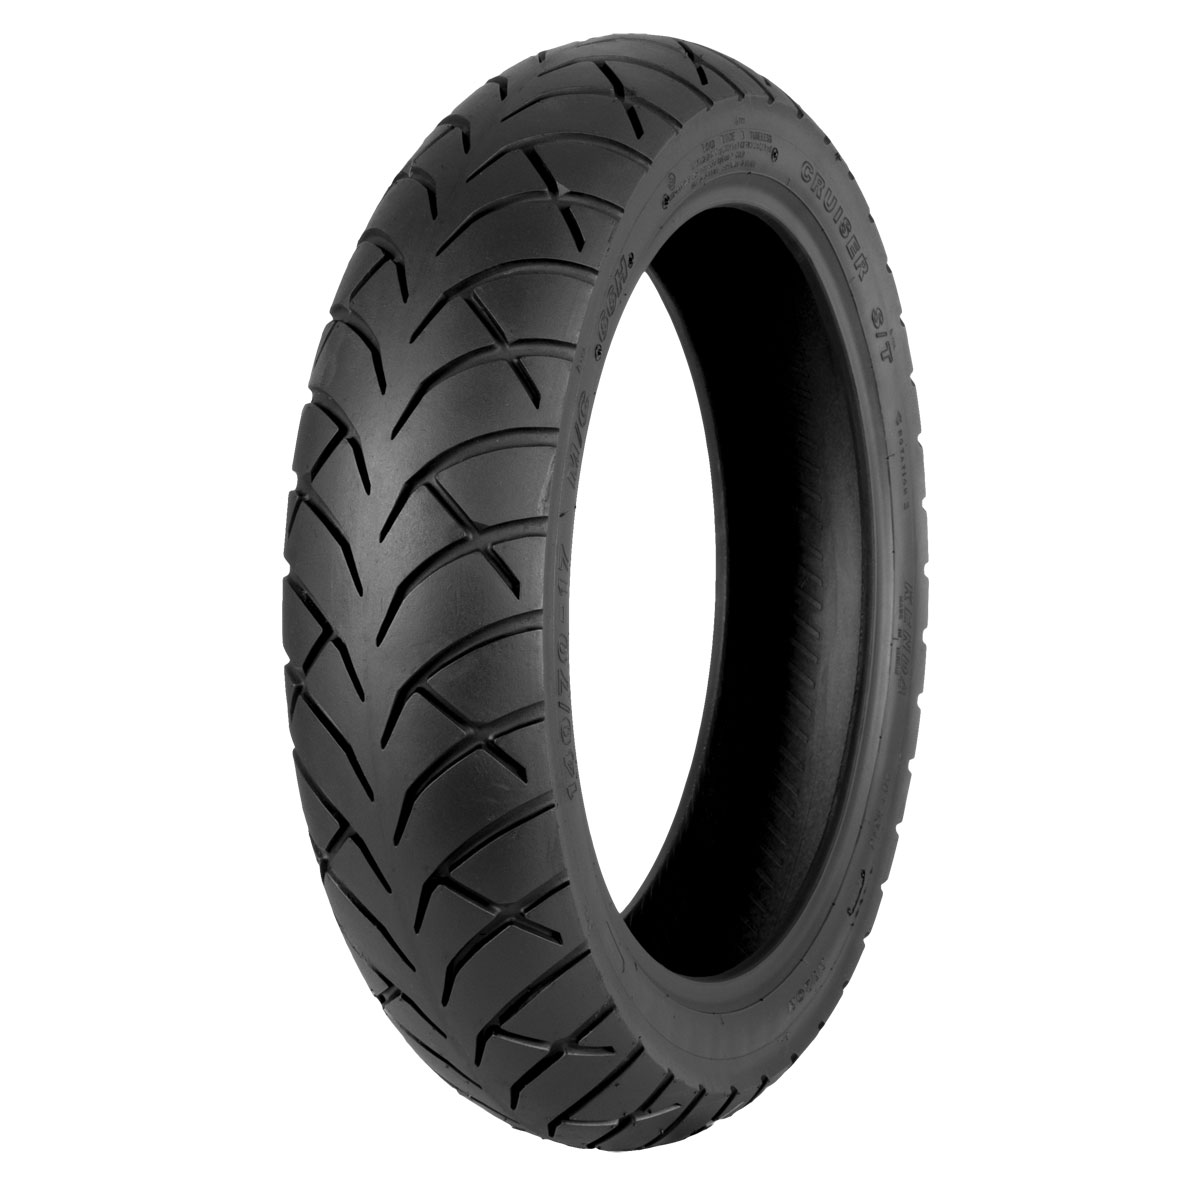 Kenda Tires K671 Cruiser 170/80-15 Rear Tire